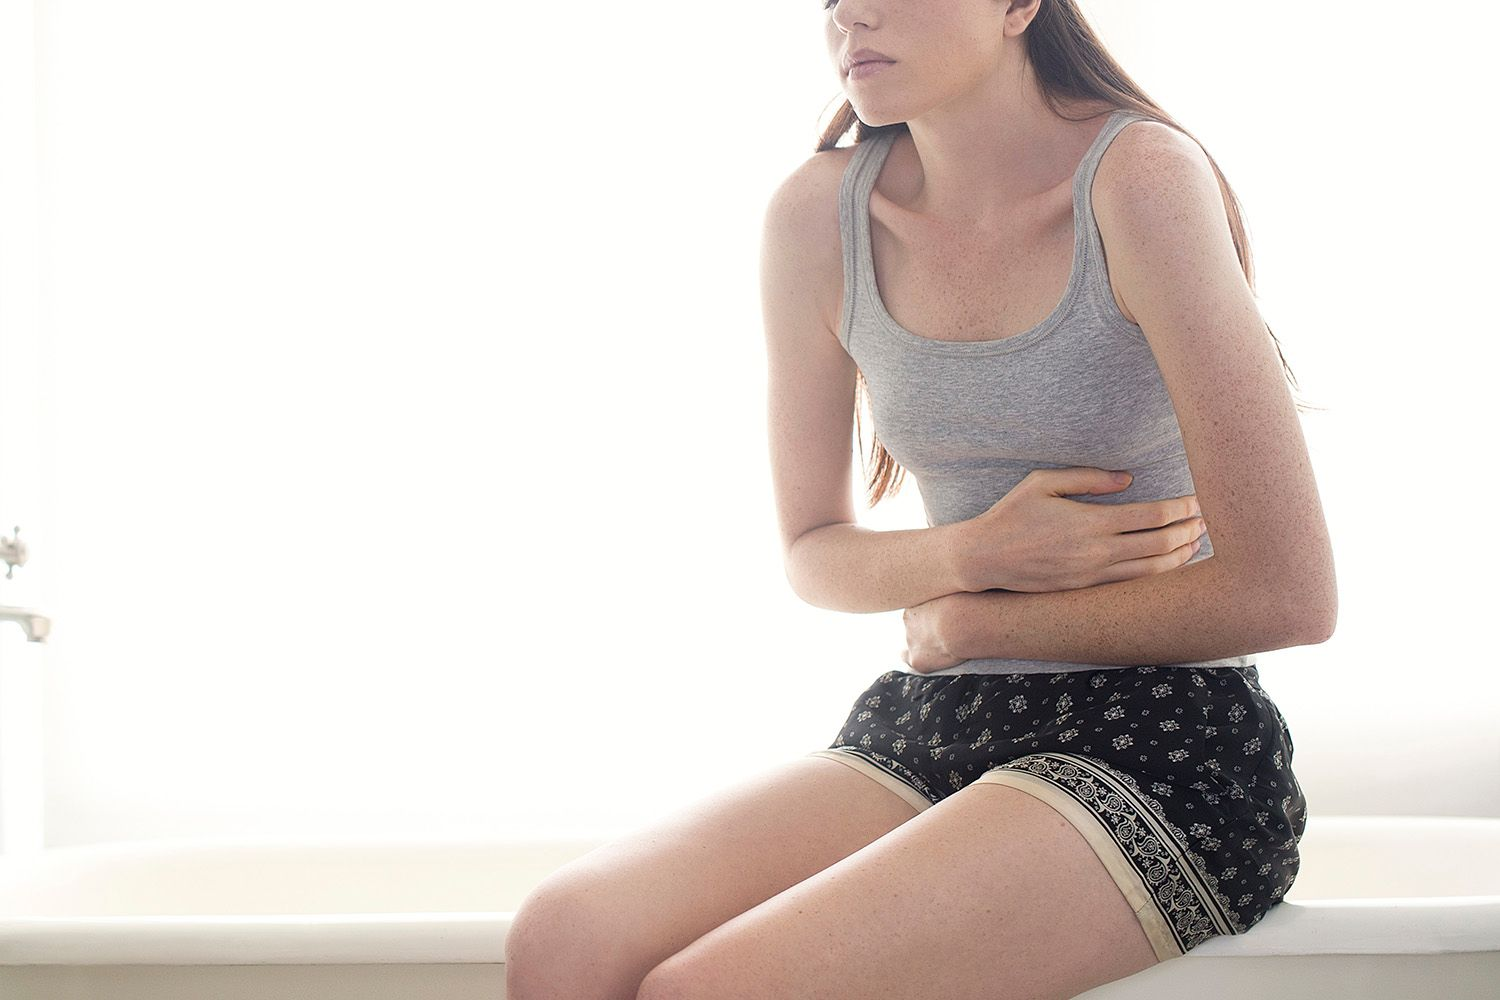 Ectopic pregnancy: Spotting the signs - and getting help   Closer